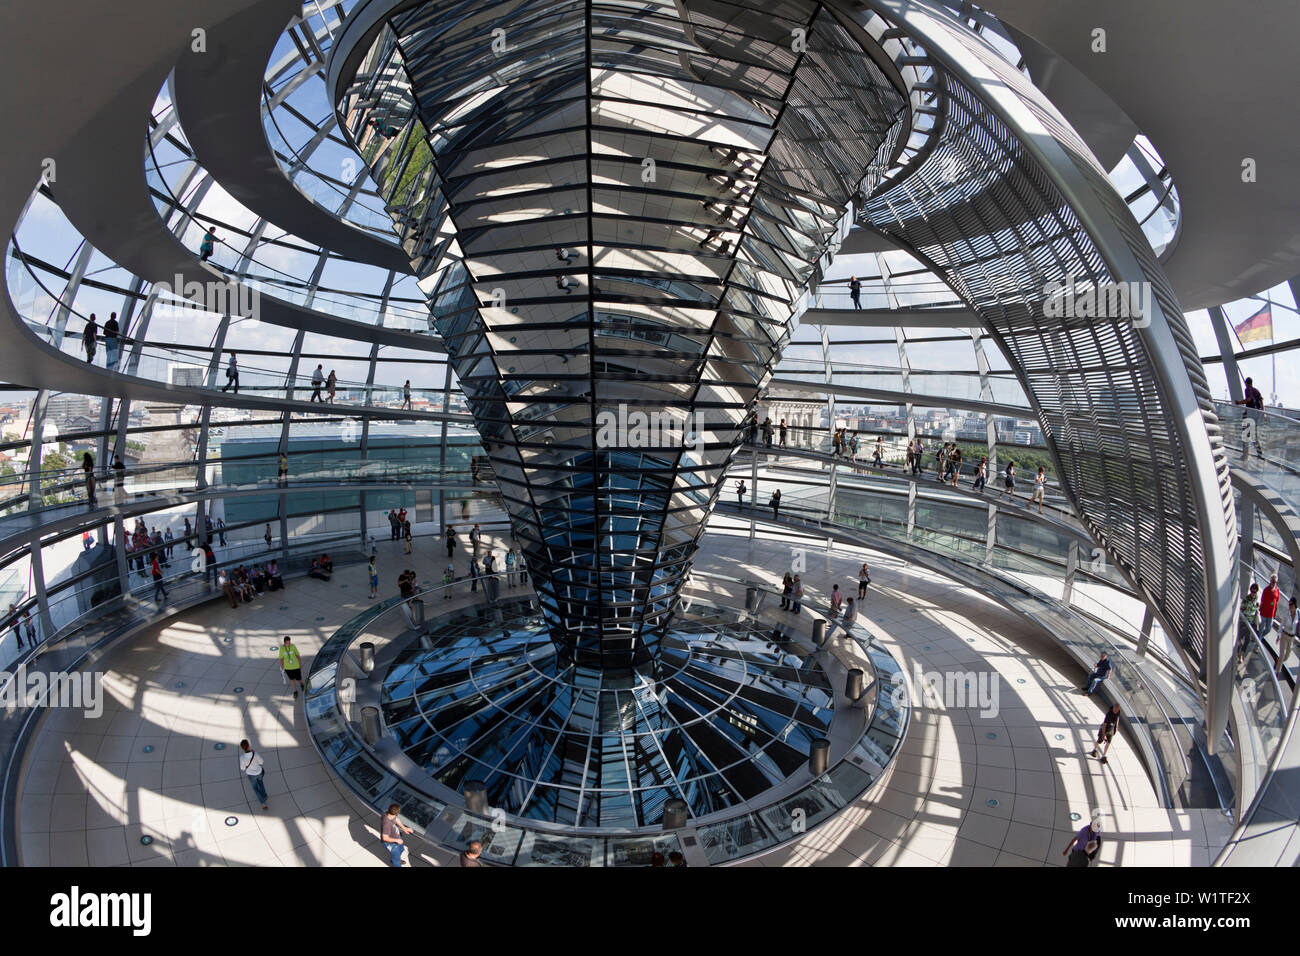 Reichtstag dome interieur, Architect Sir Norman Forster, Berlin Stock Photo